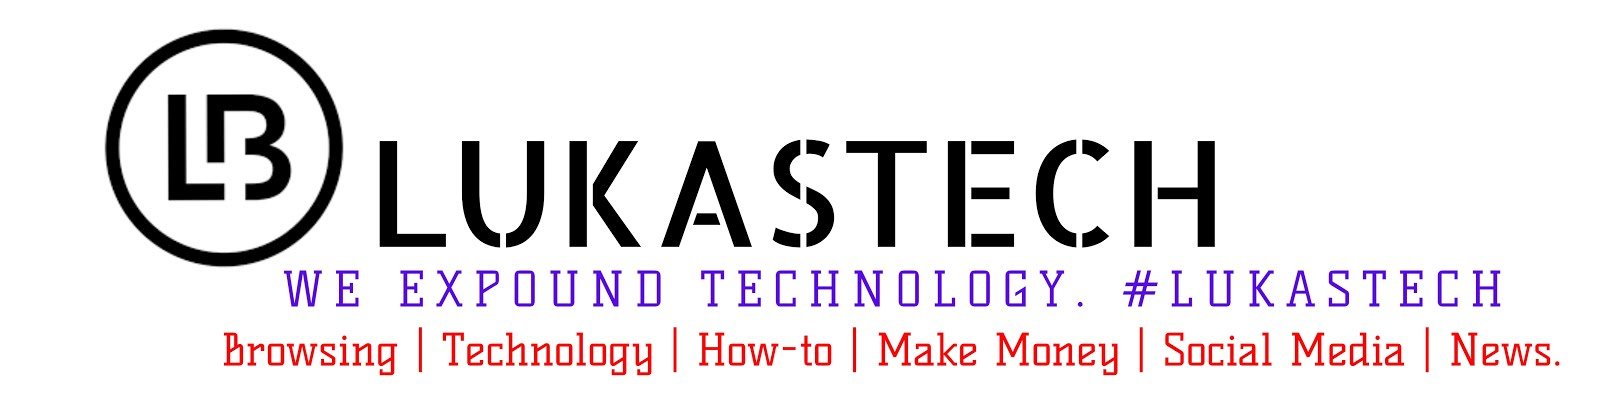 Lukastech Blog — We Expound Technology